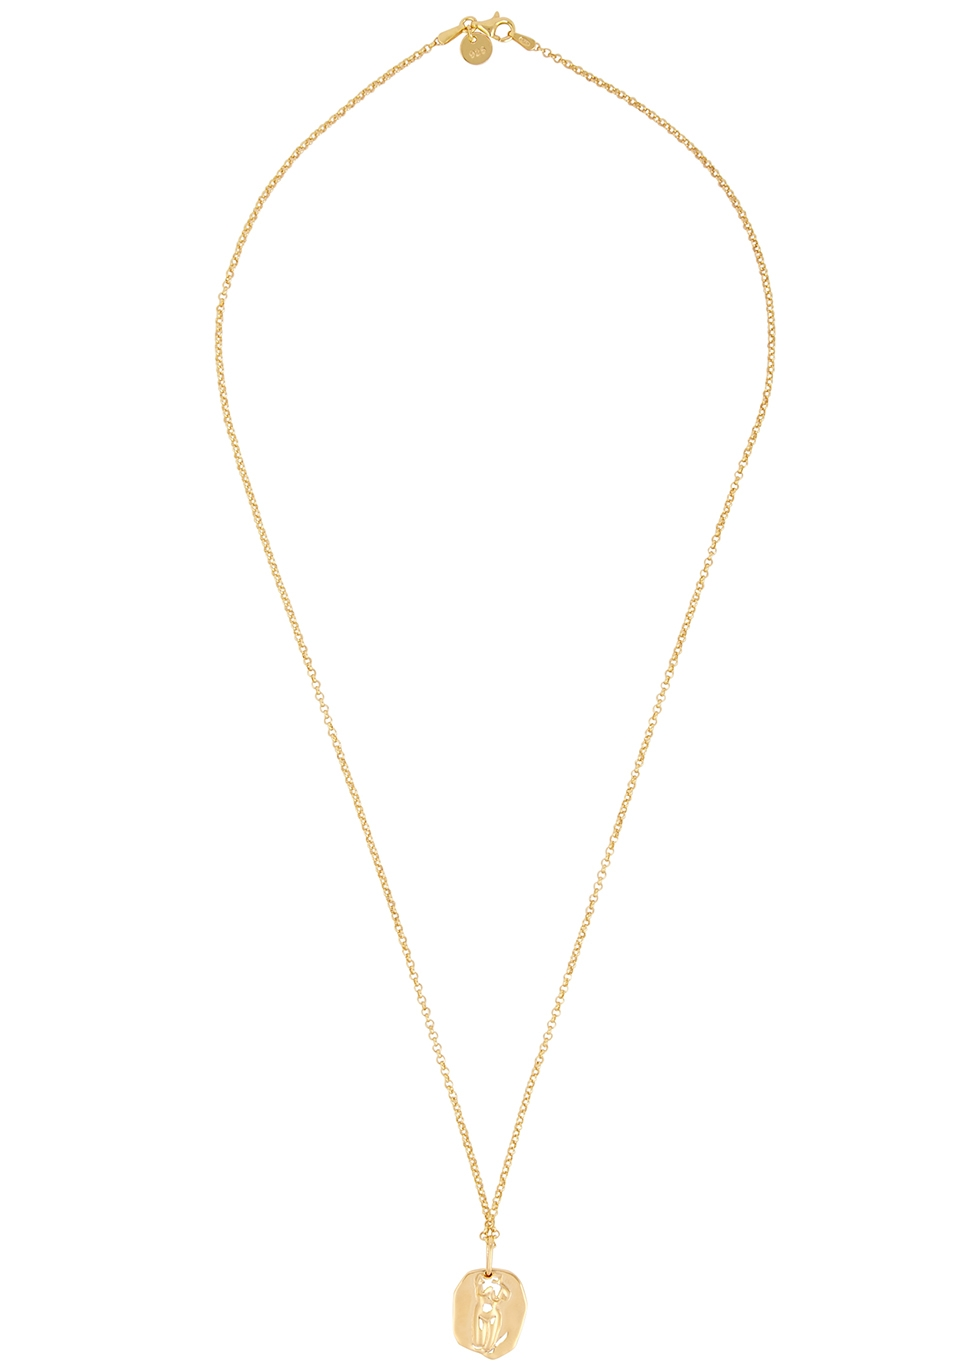 Aphrodite 18kt gold-plated necklace